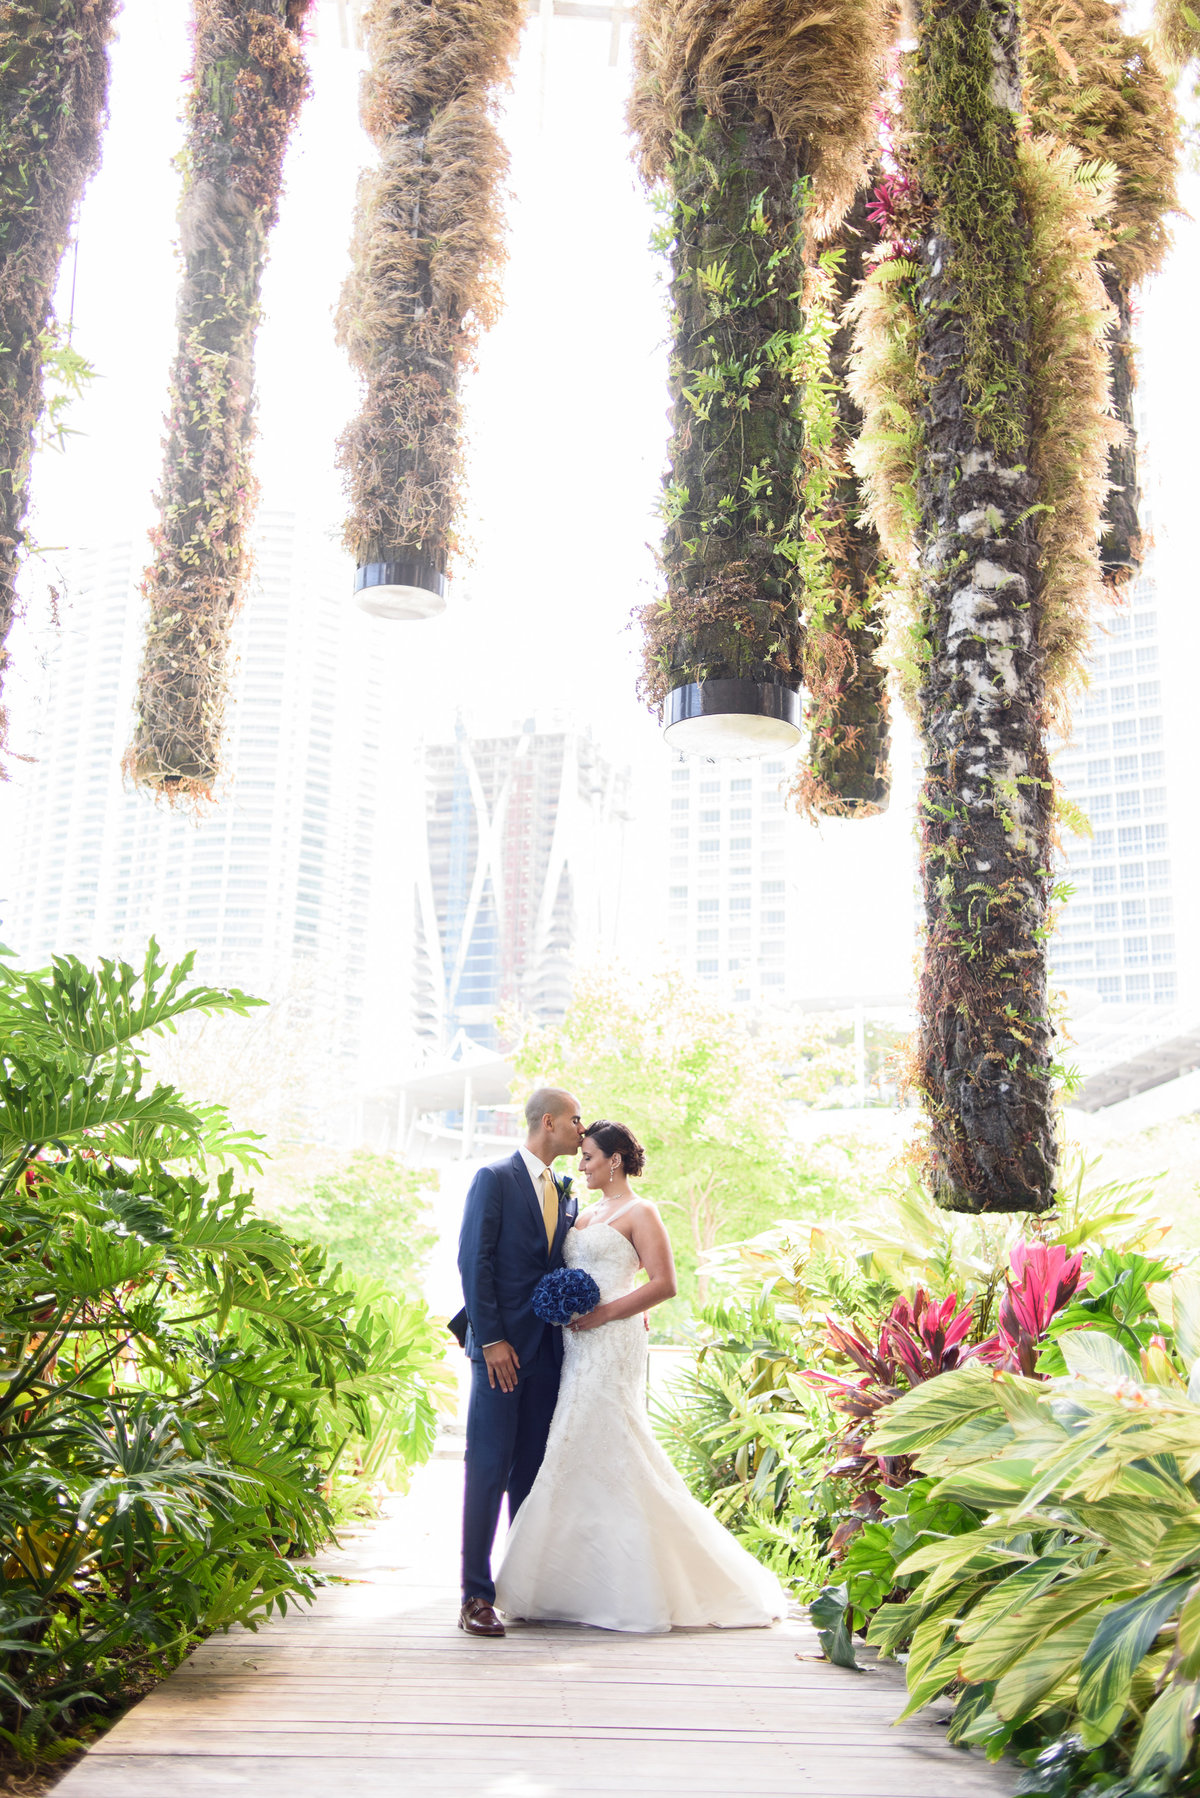 TM_MiamiWeddingPhotographers_091